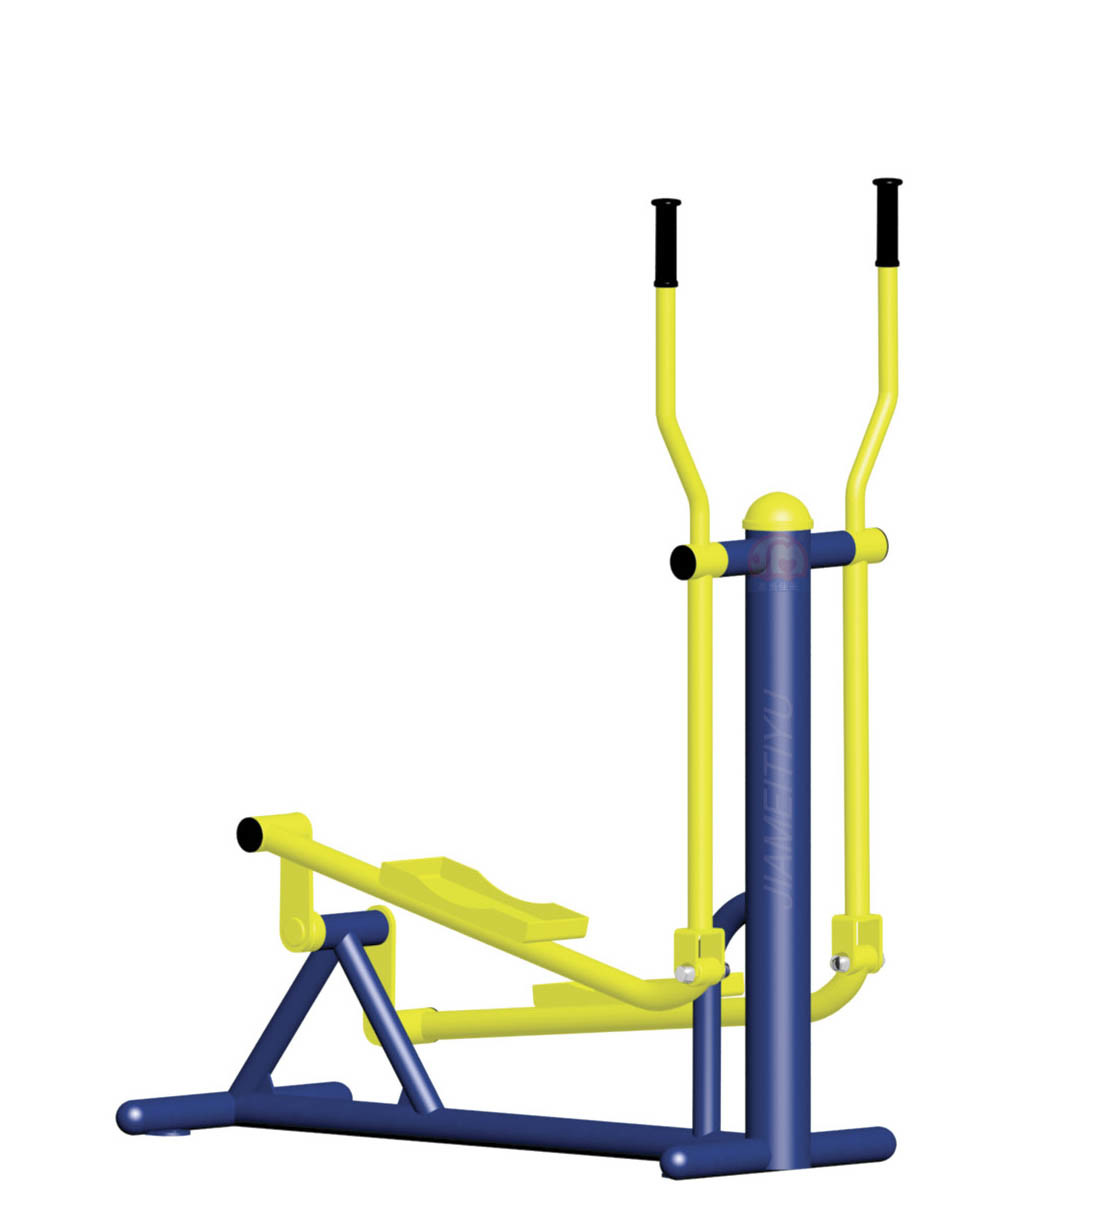 Nscc Elliptical Trainer Outdoor Fitness Equipment